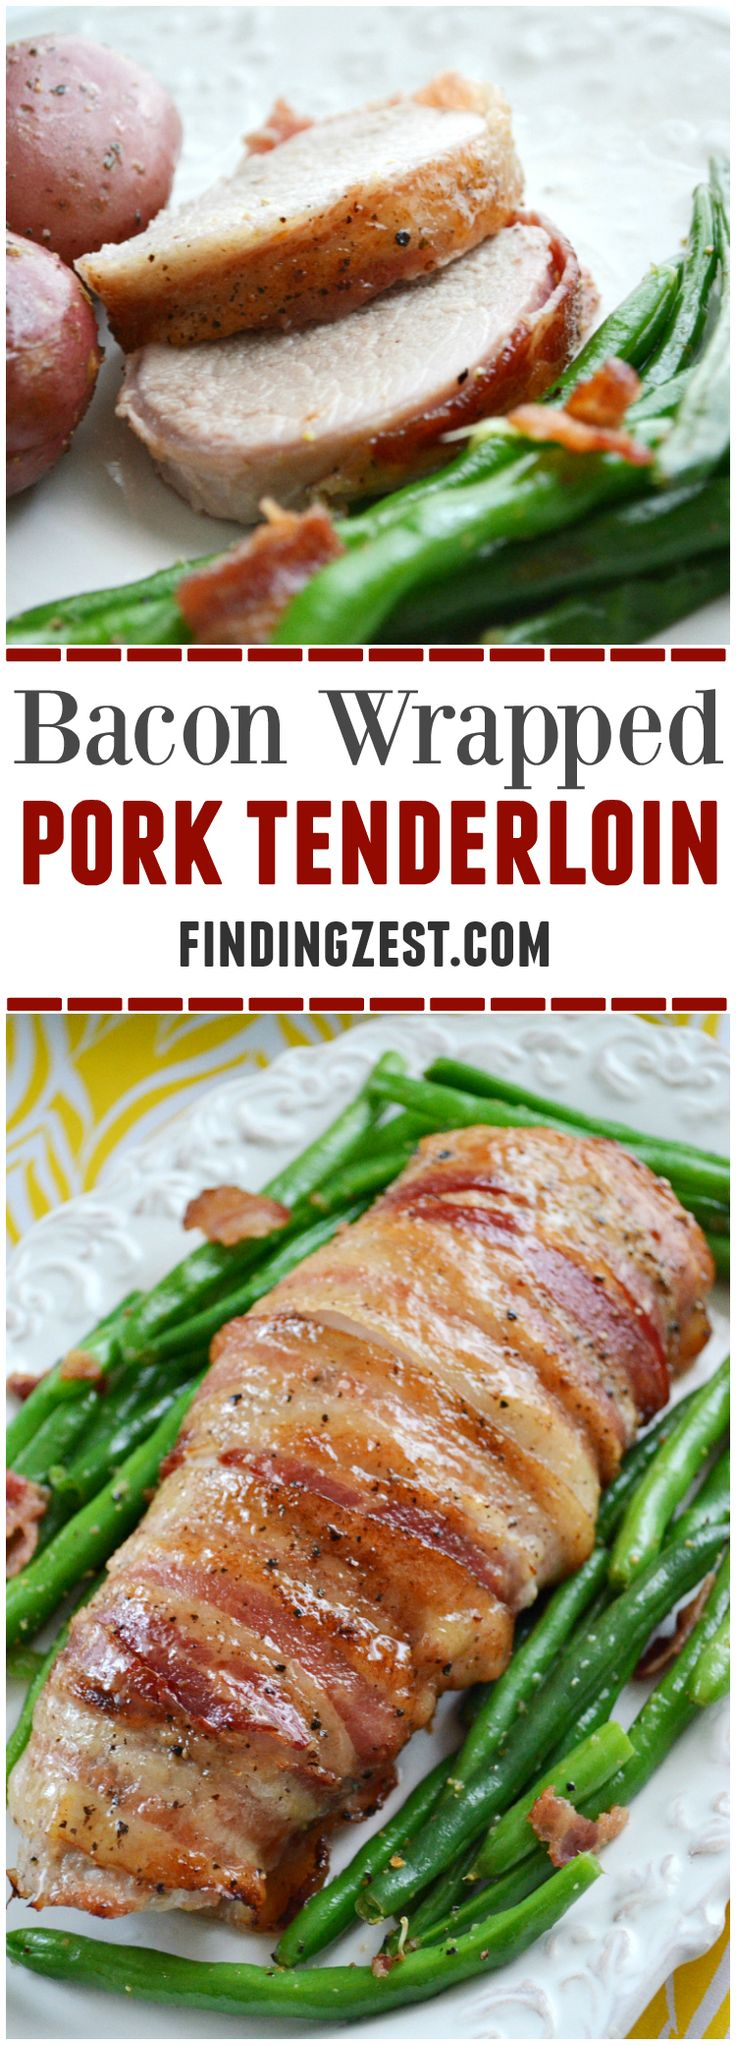 25 best ideas about bacon wrapped pork tenderloin on for Easy entree recipes dinner party